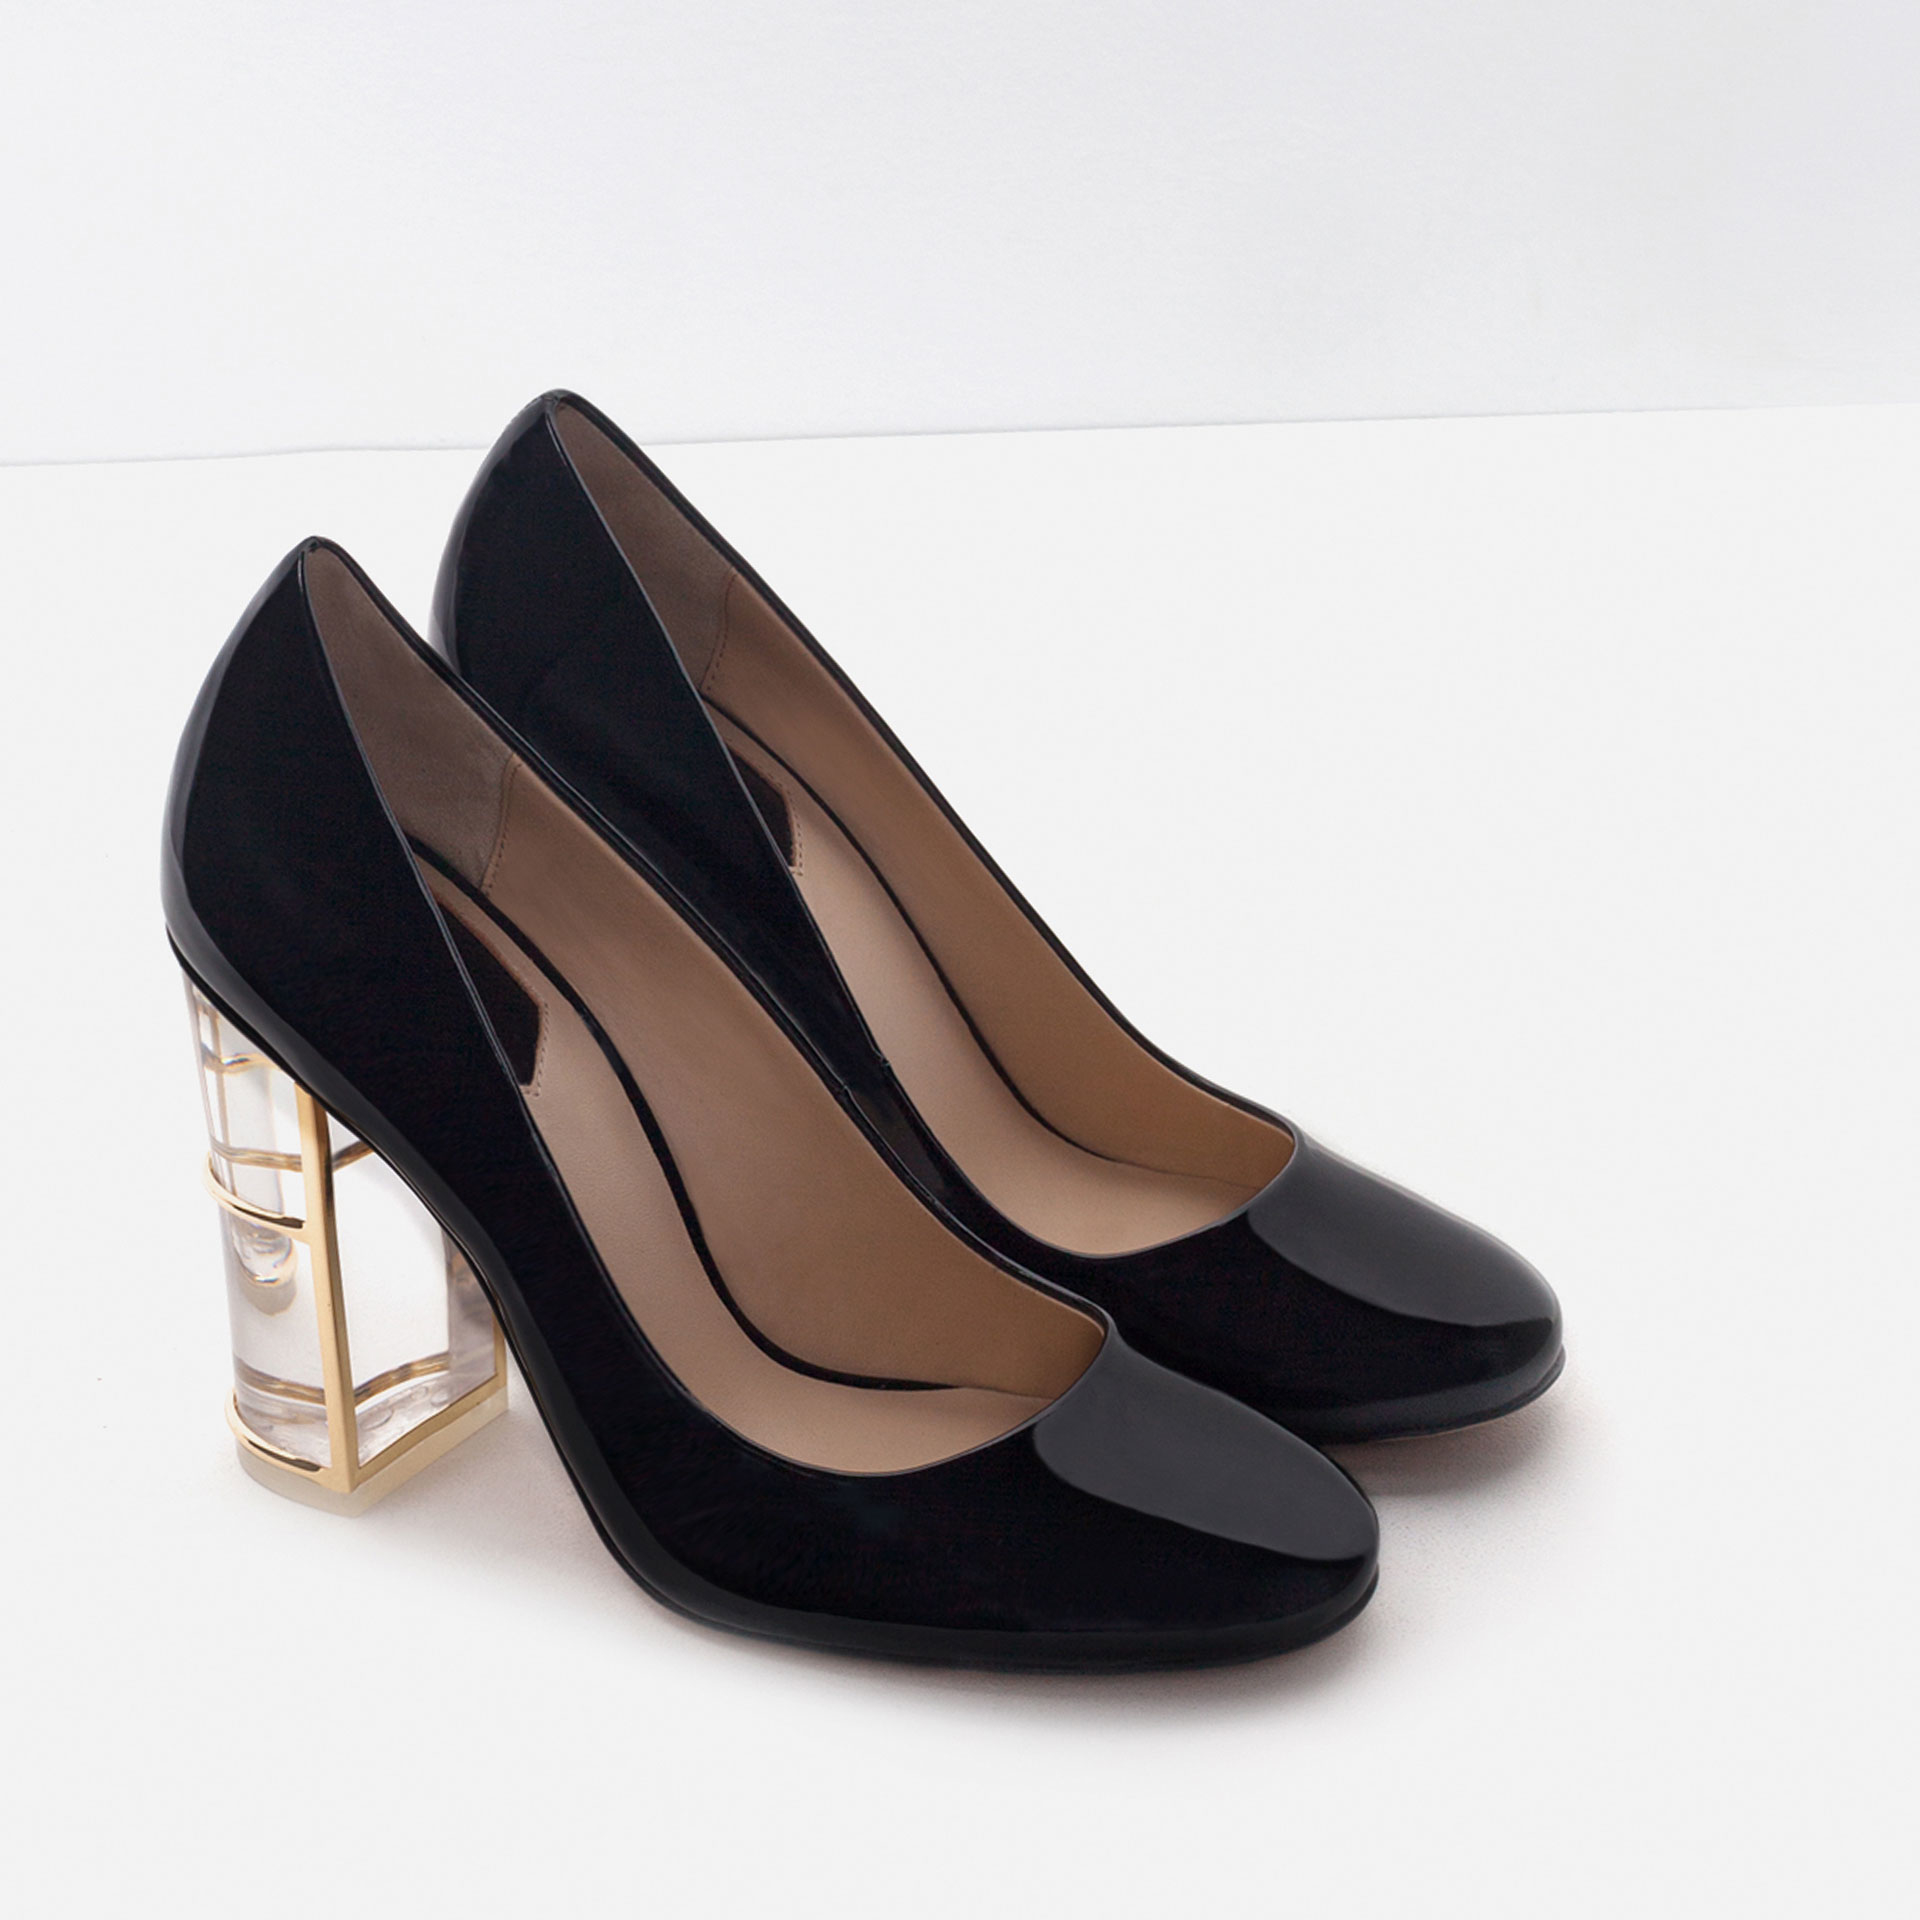 Creative Shoe Of The Day  Zara 5quot Stiletto Pumps Gt Shoeperwoman